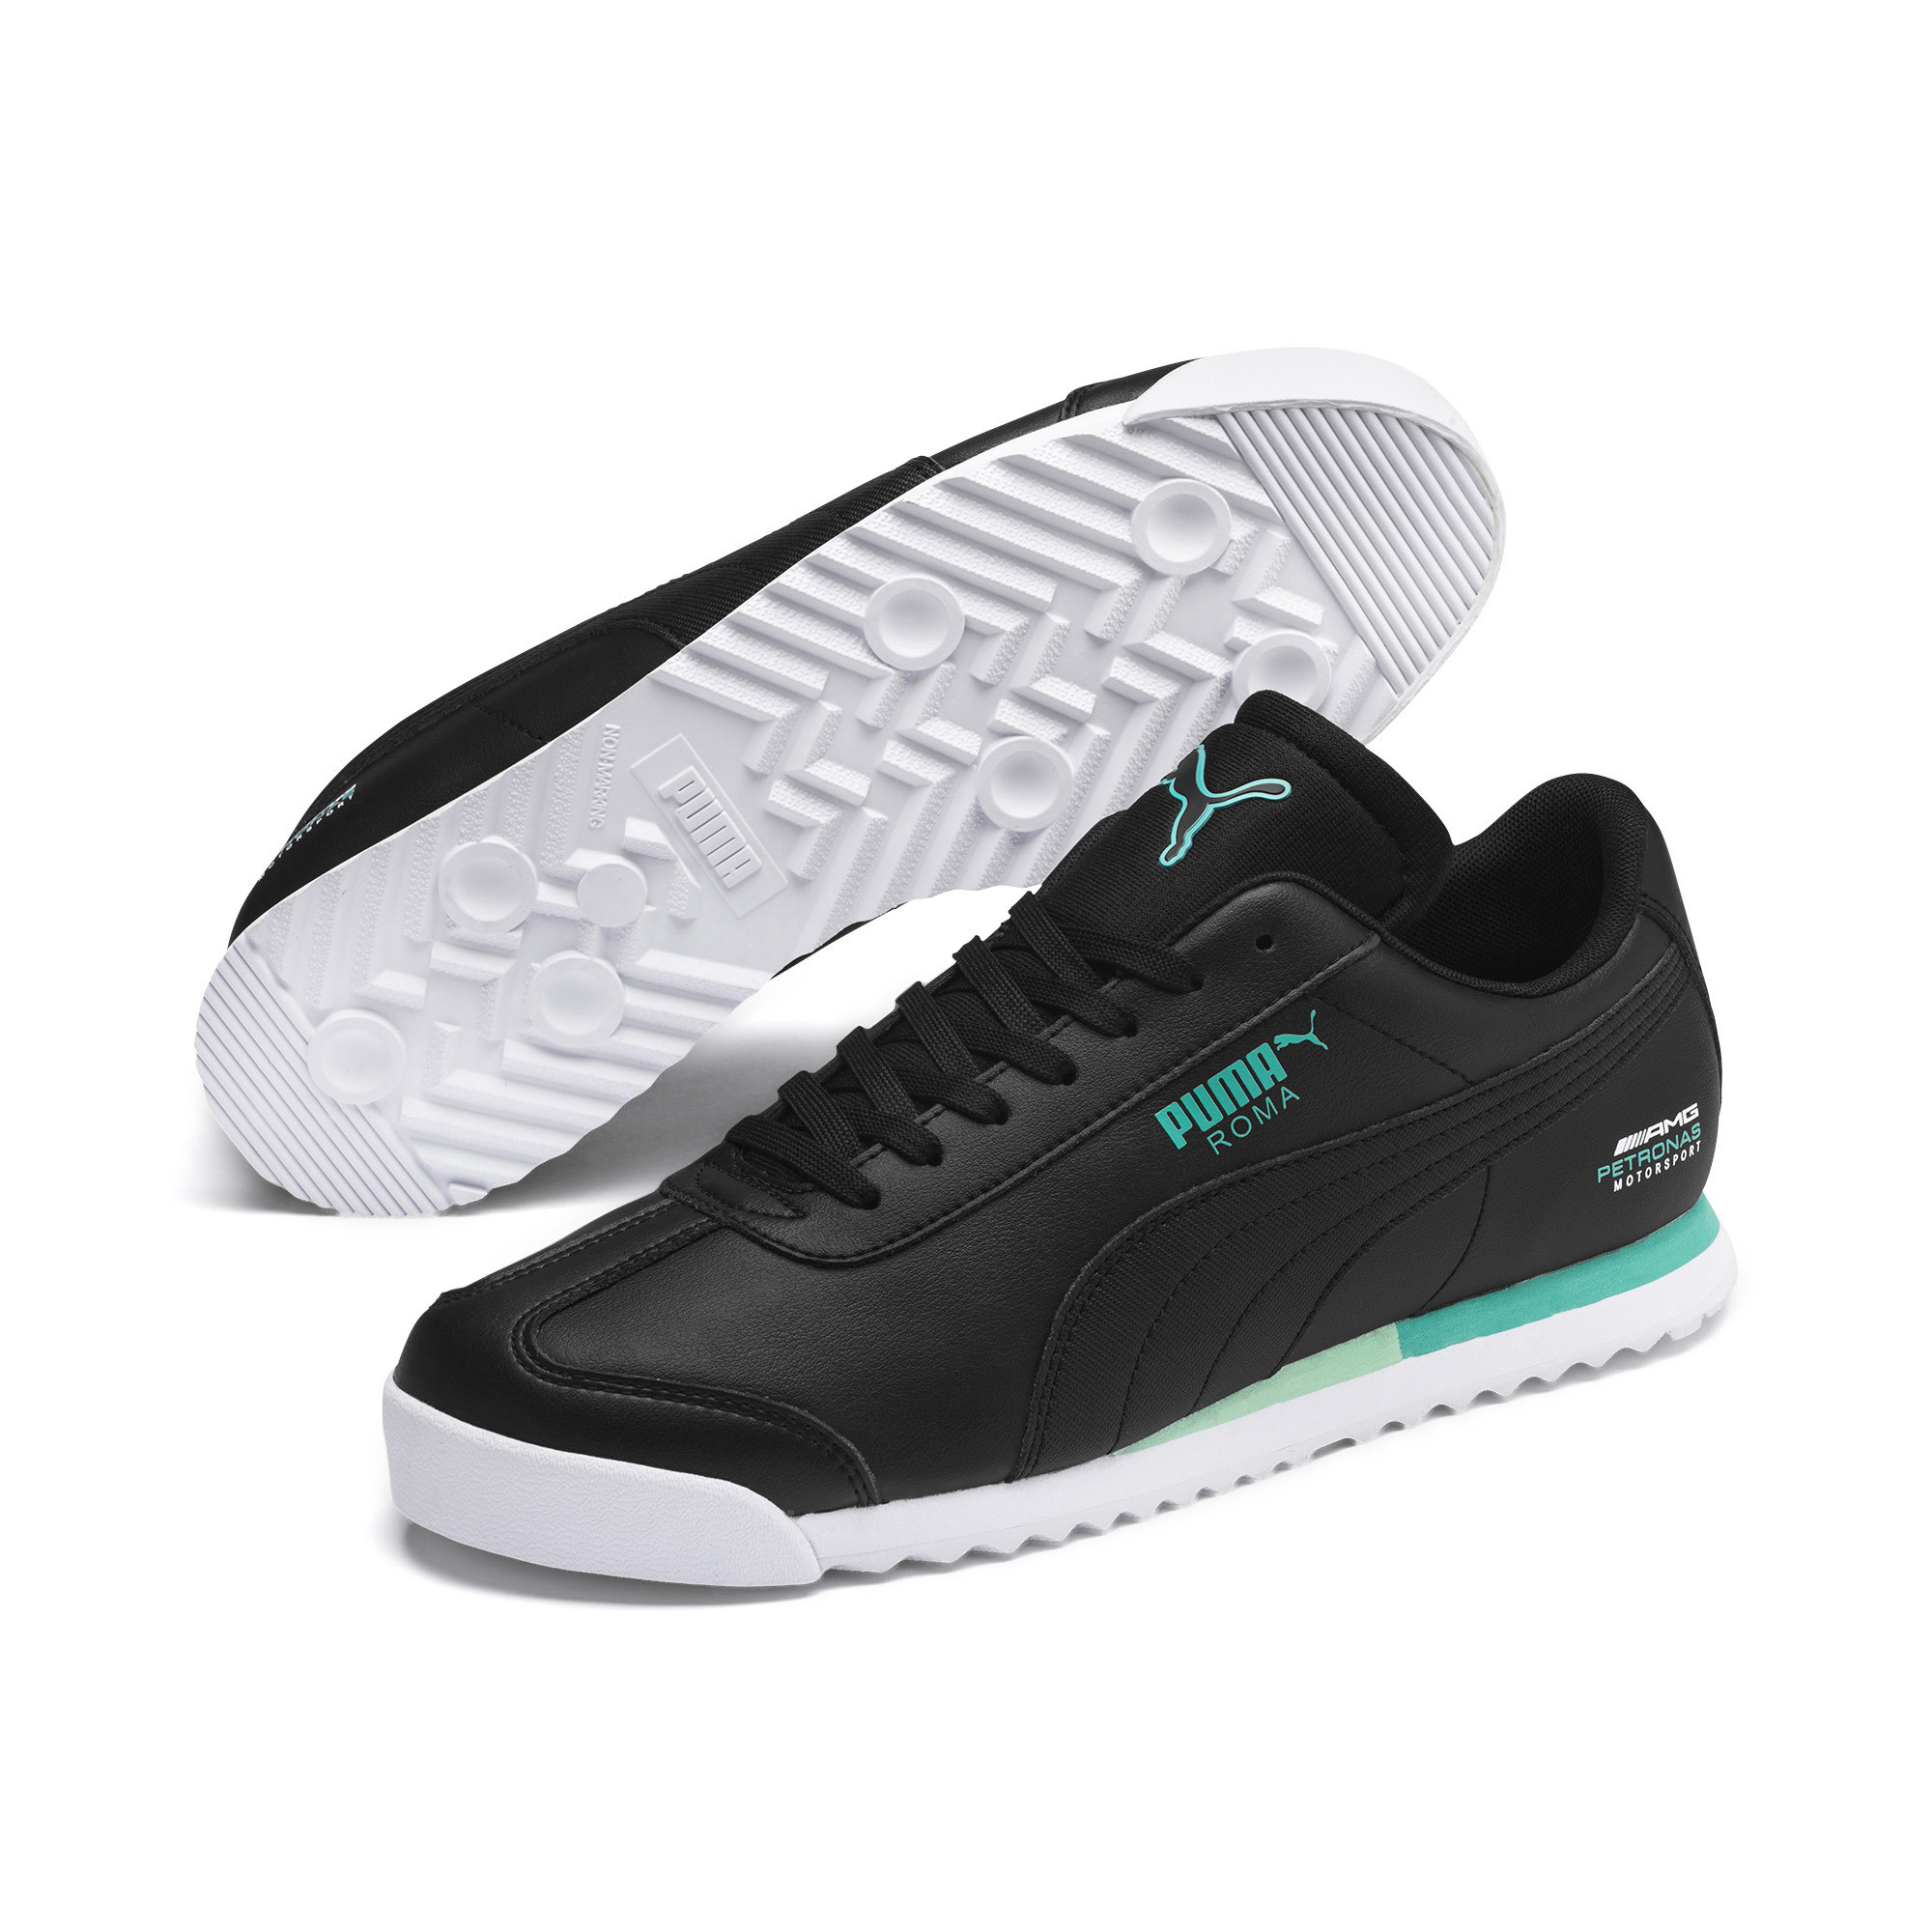 Details about PUMA Men's Mercedes AMG Petronas Roma Sneakers